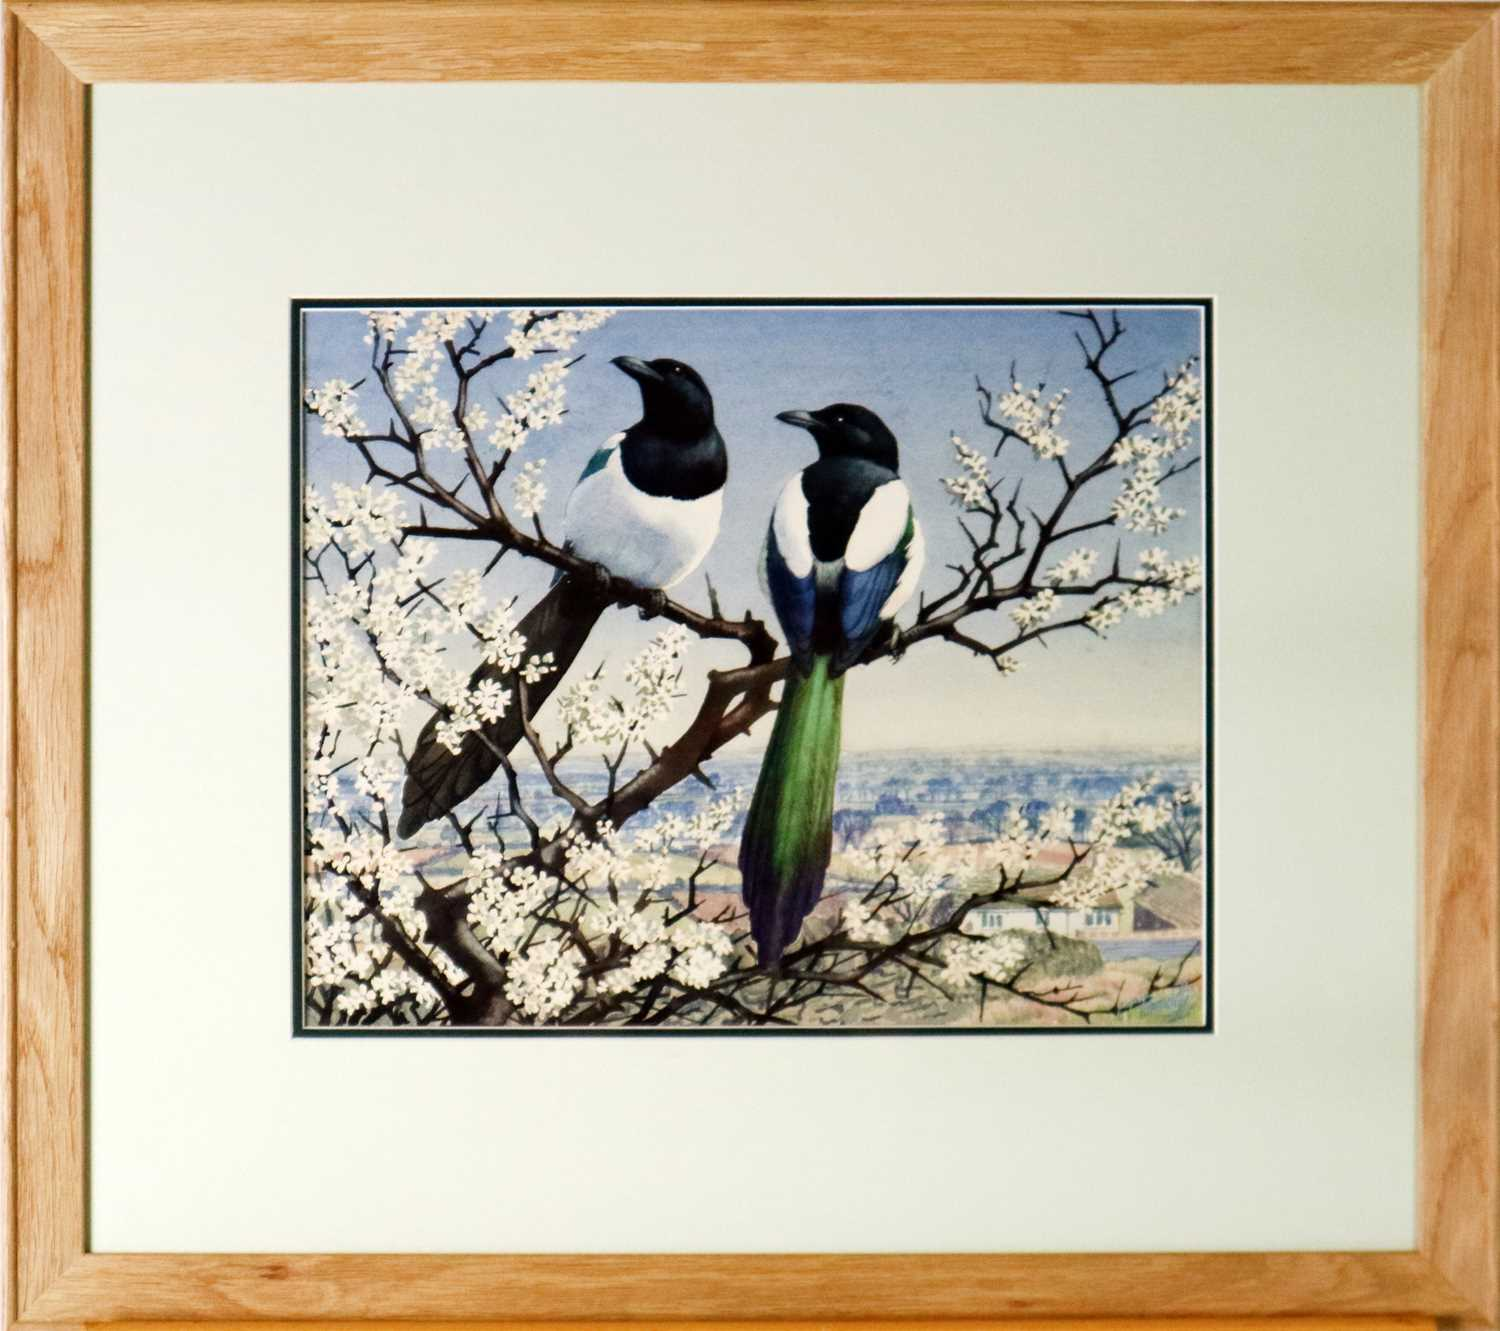 Charles Frederick Tunnicliffe OBE RA(1901-1979) Magpies in Blossom - Image 2 of 5